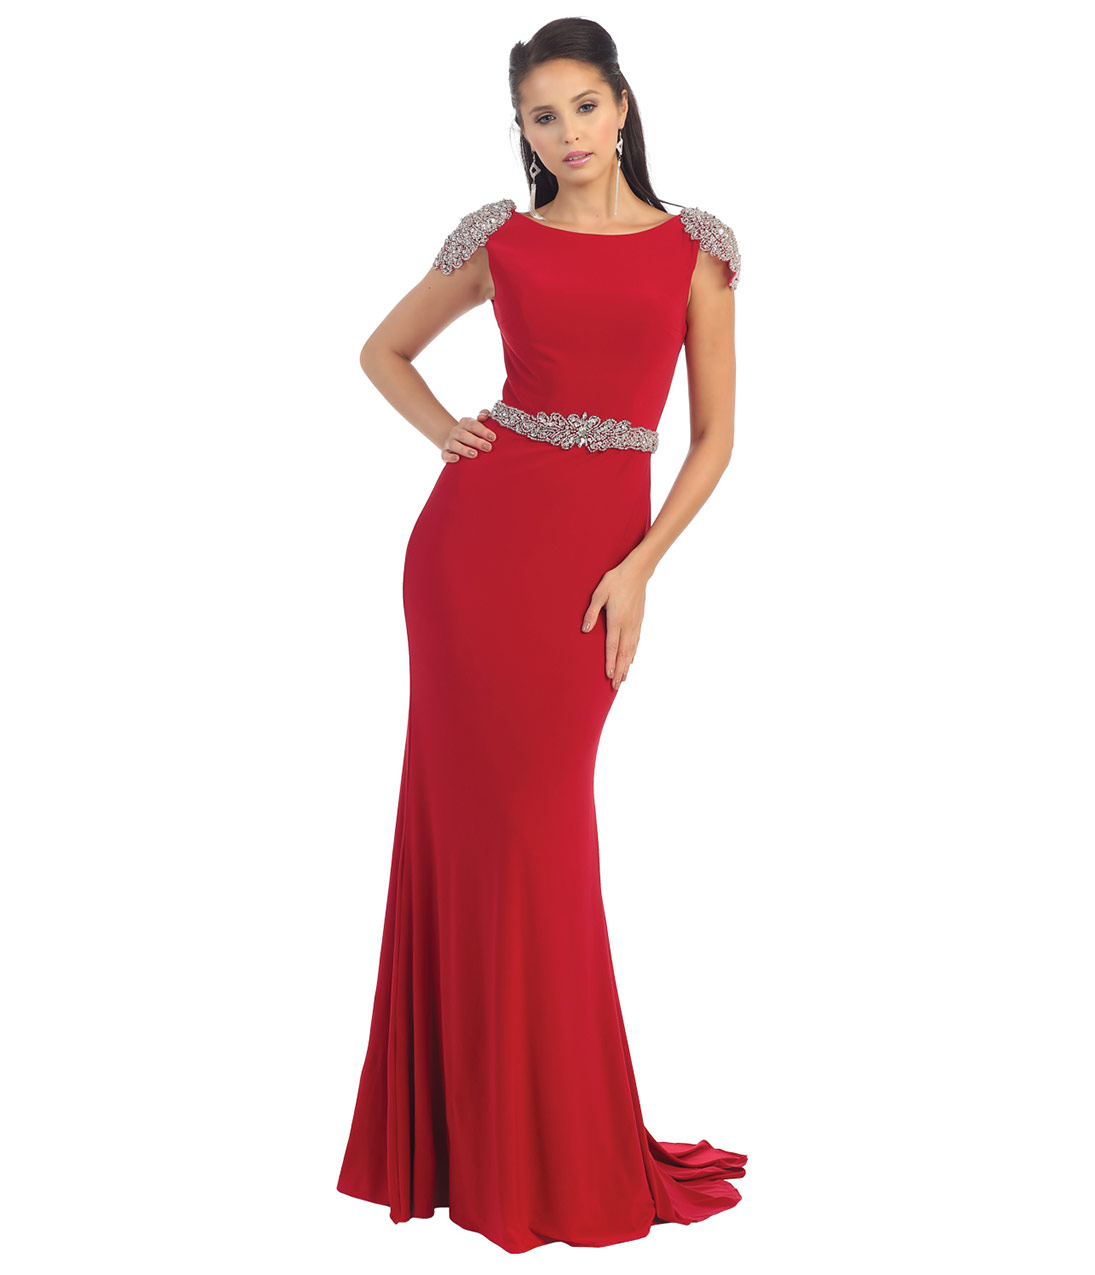 Radiant Red Cap Sleeve Gown 2015 Prom Dresses